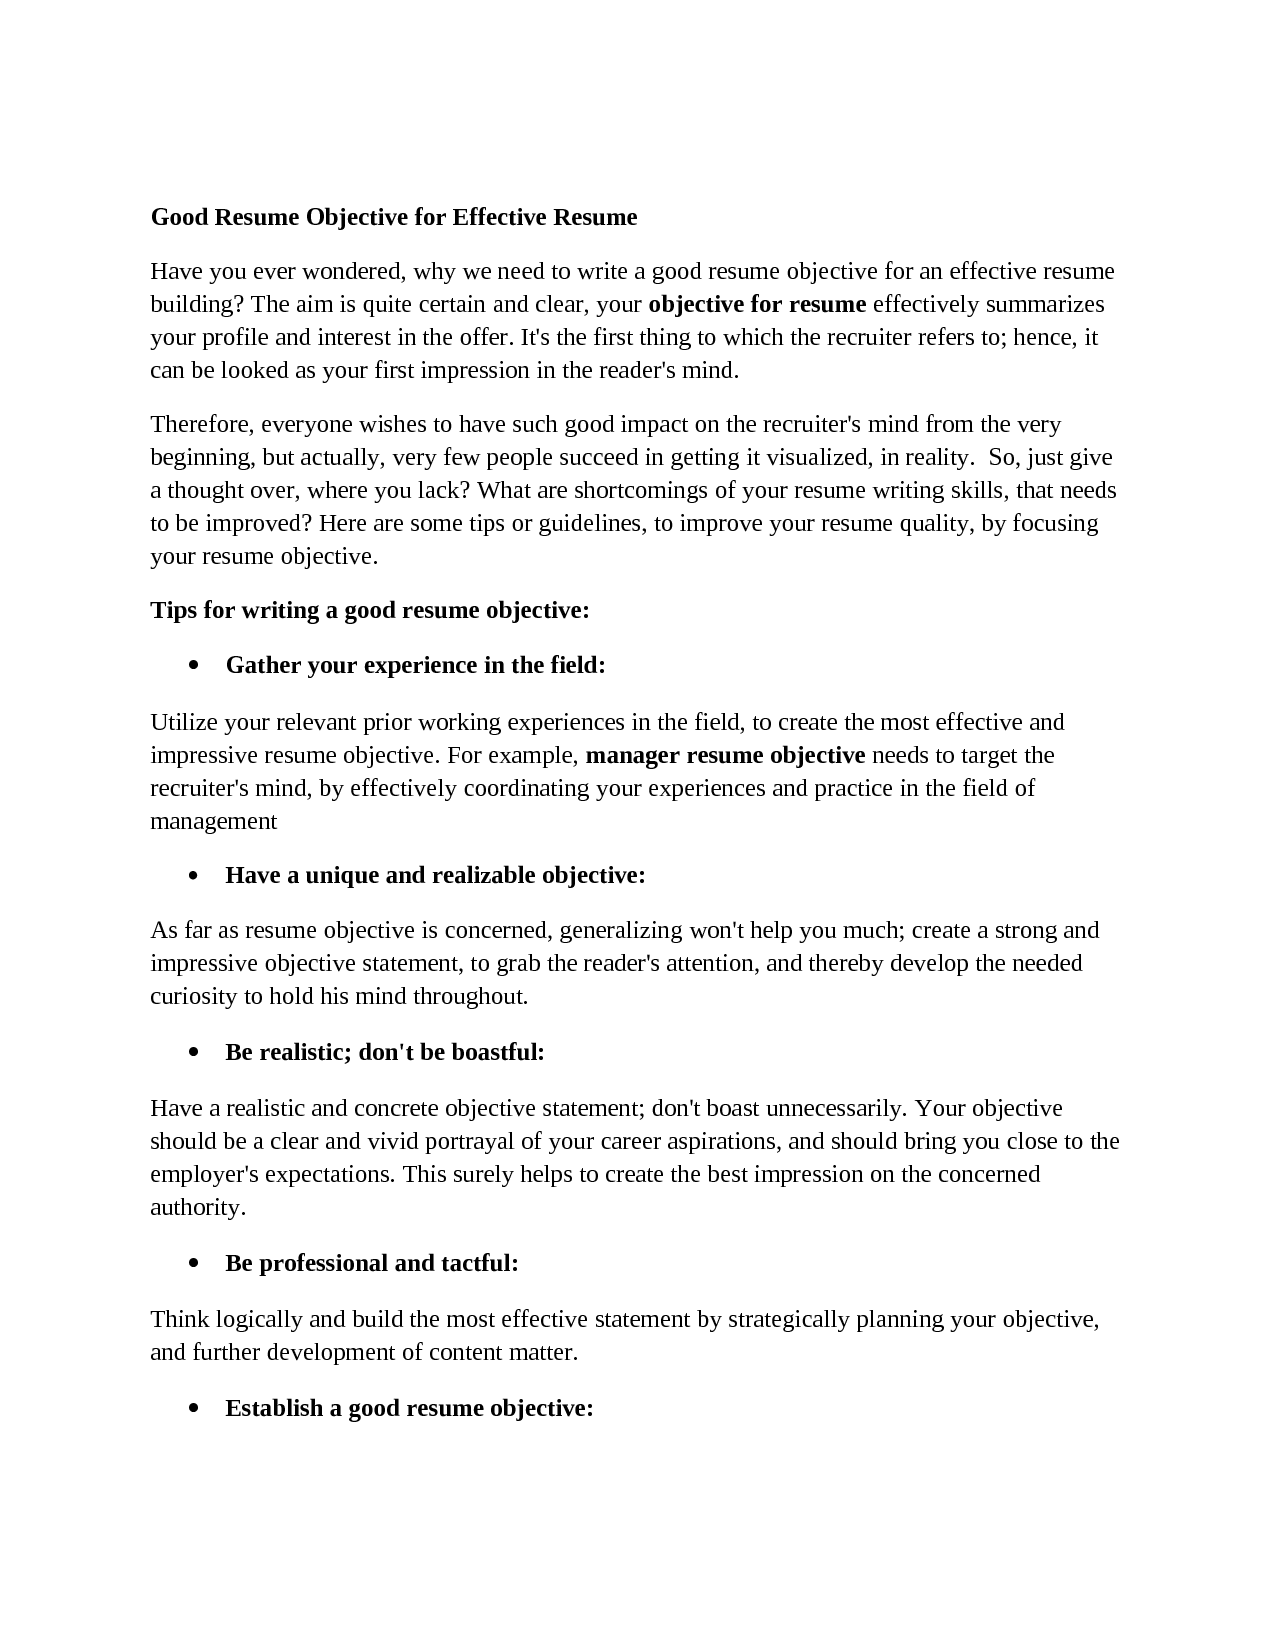 Good General Objective For Resume 10 Great Good Resume Objectives Samplebusinessresume